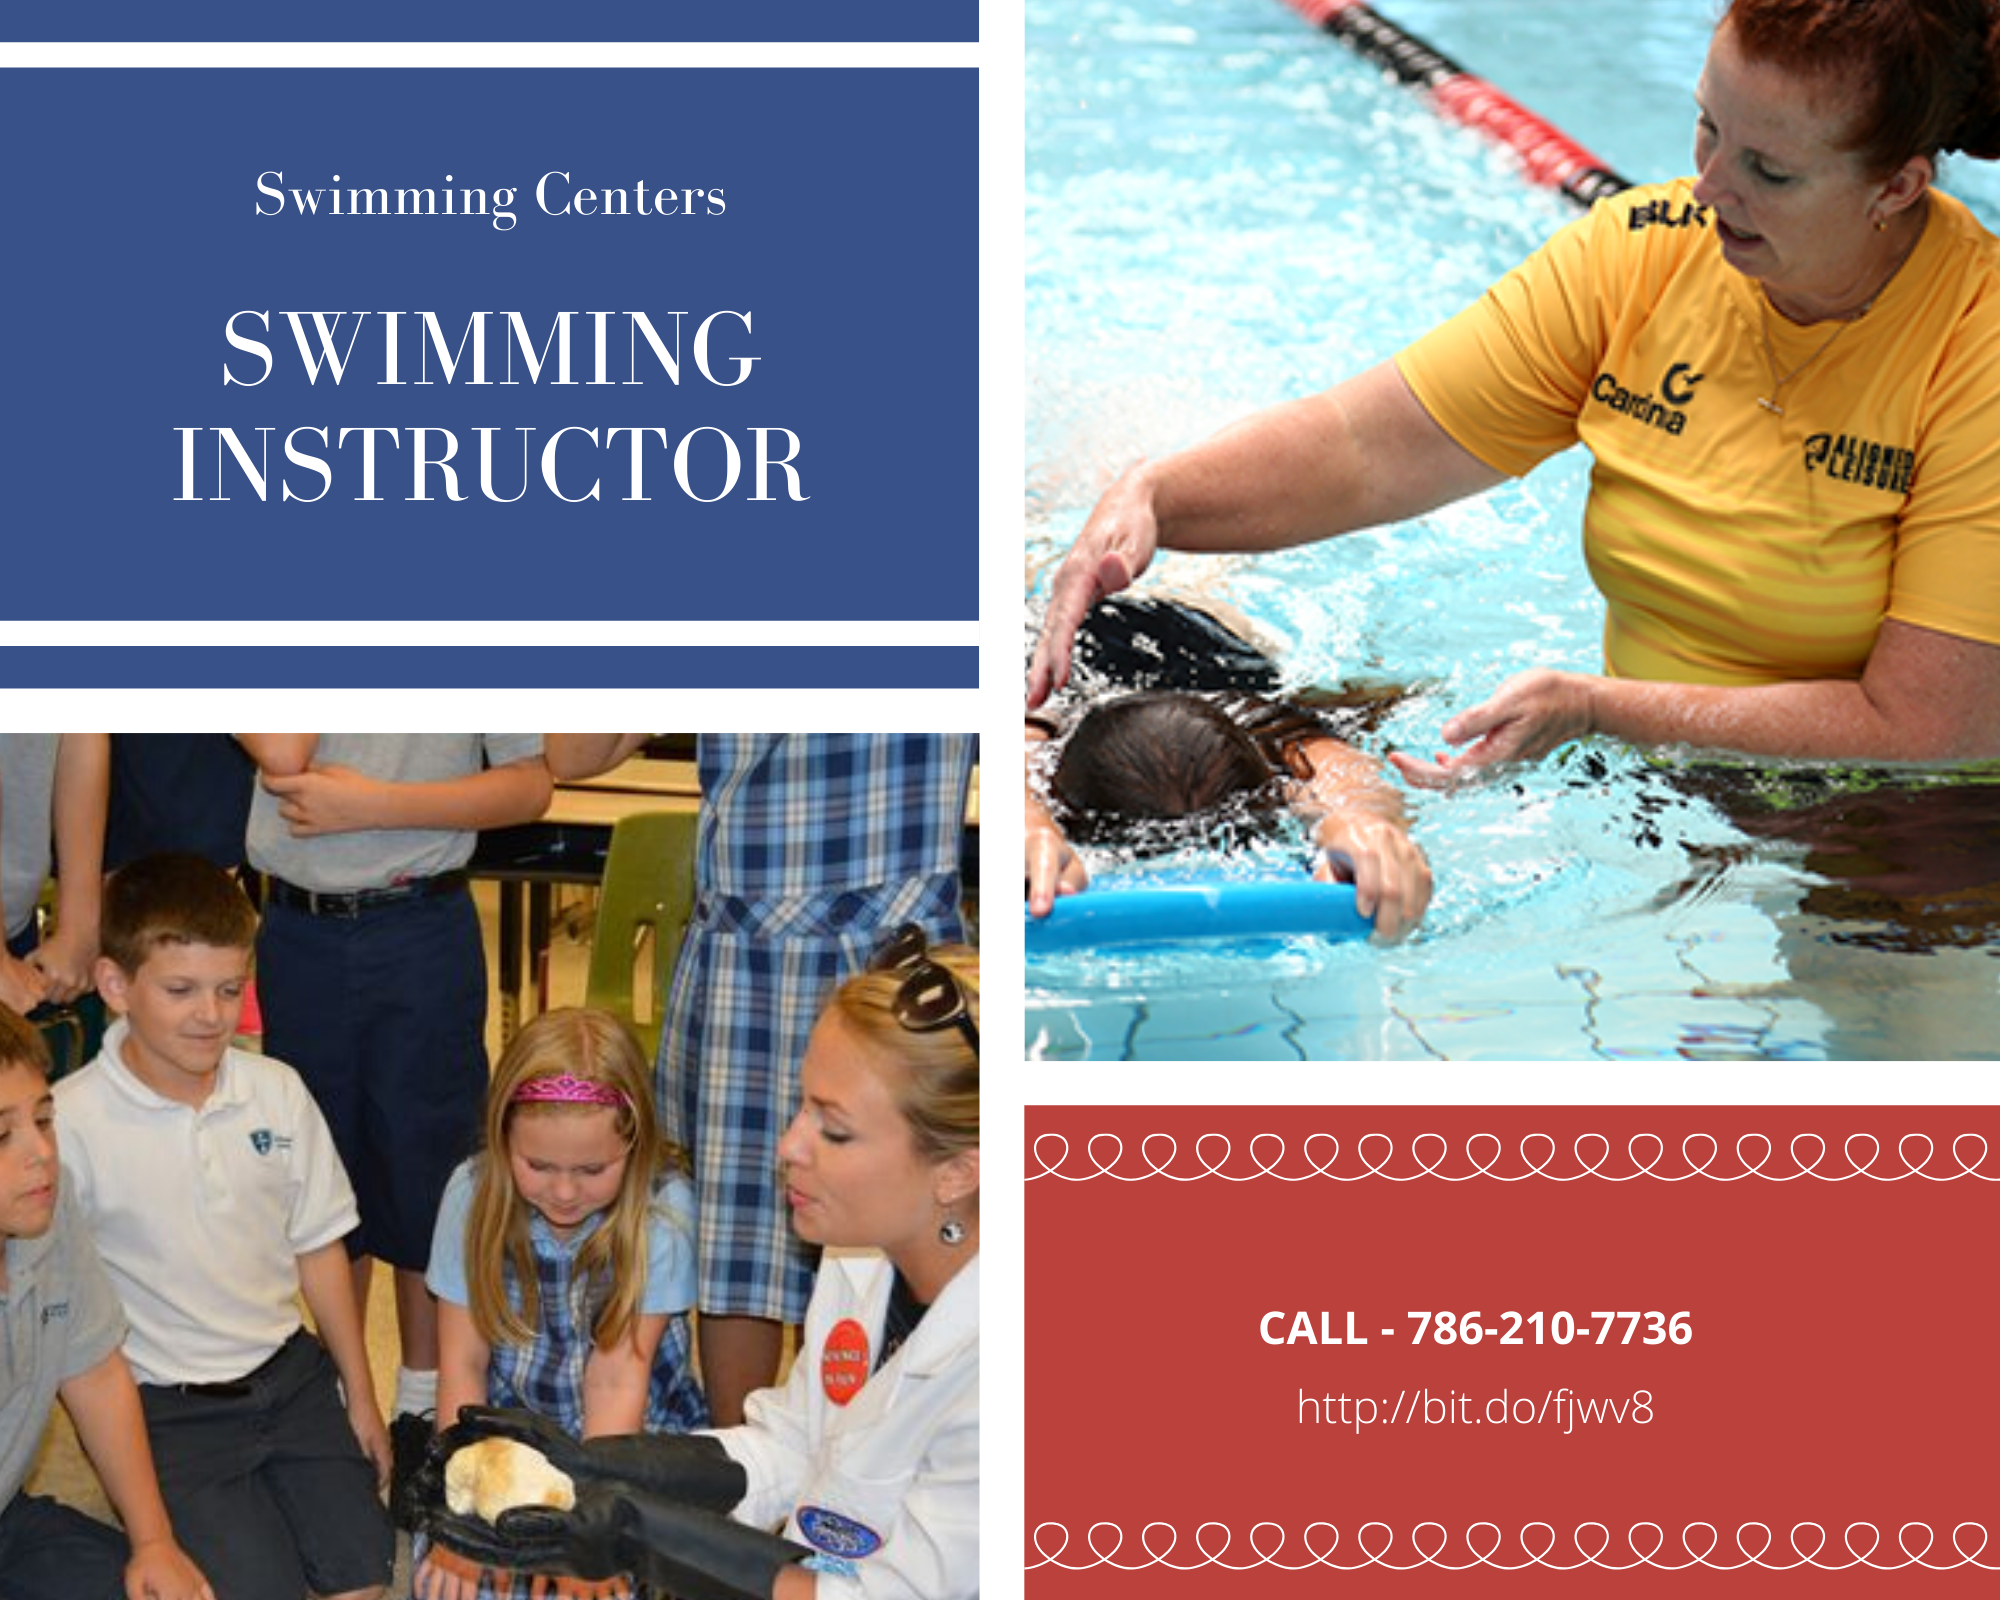 Swimming Centers Swimming Classes For Kids Swimming Instructor For Females Swimming In Structure For Kids Le With Images Swimming Classes Swim Instructor Swimming Coach